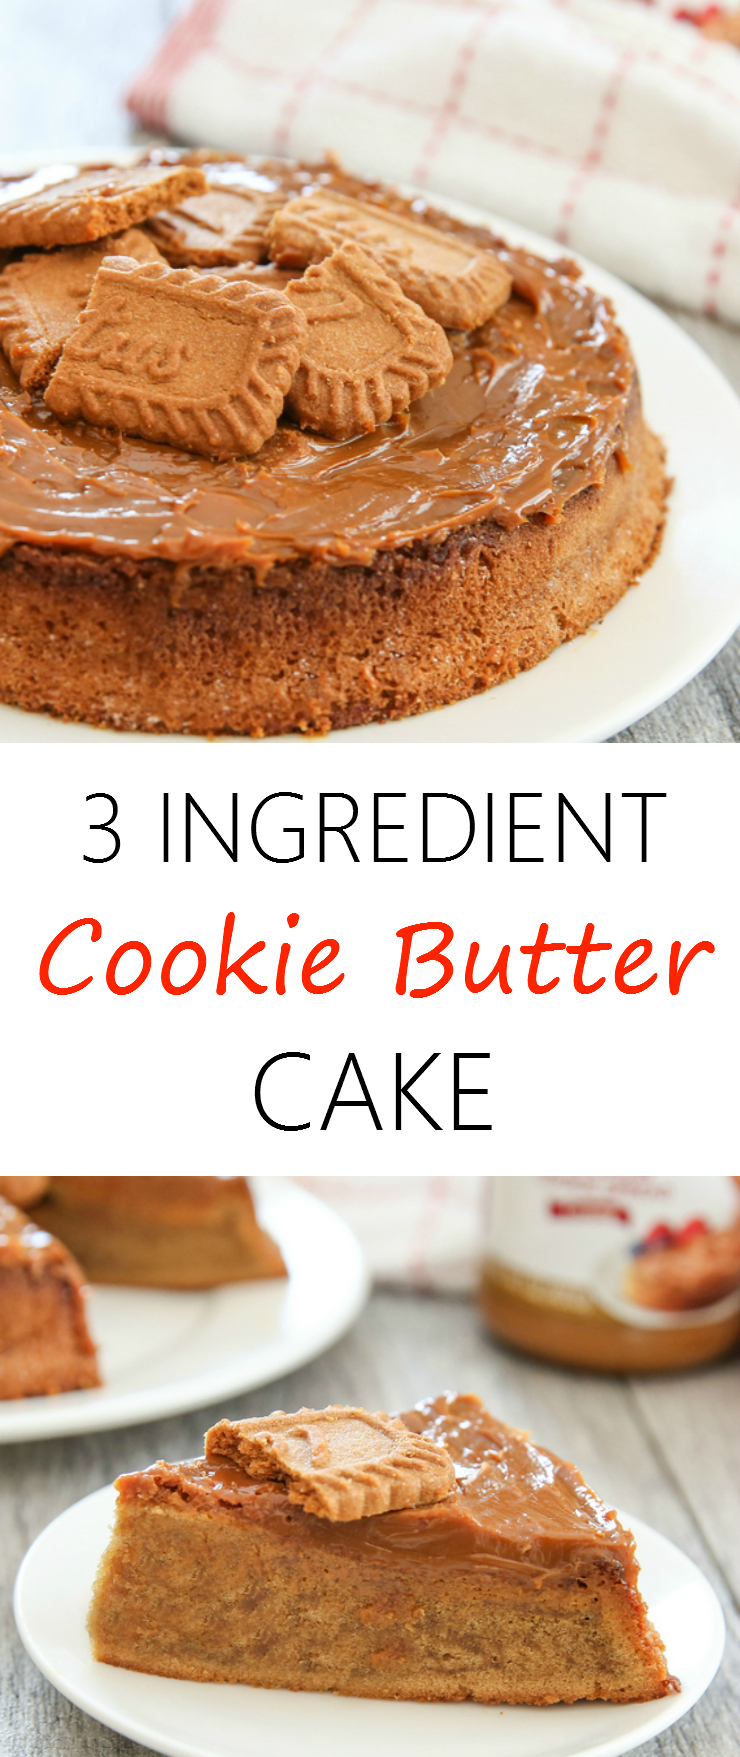 3 Ingredient Cookie Butter Cake photo collage